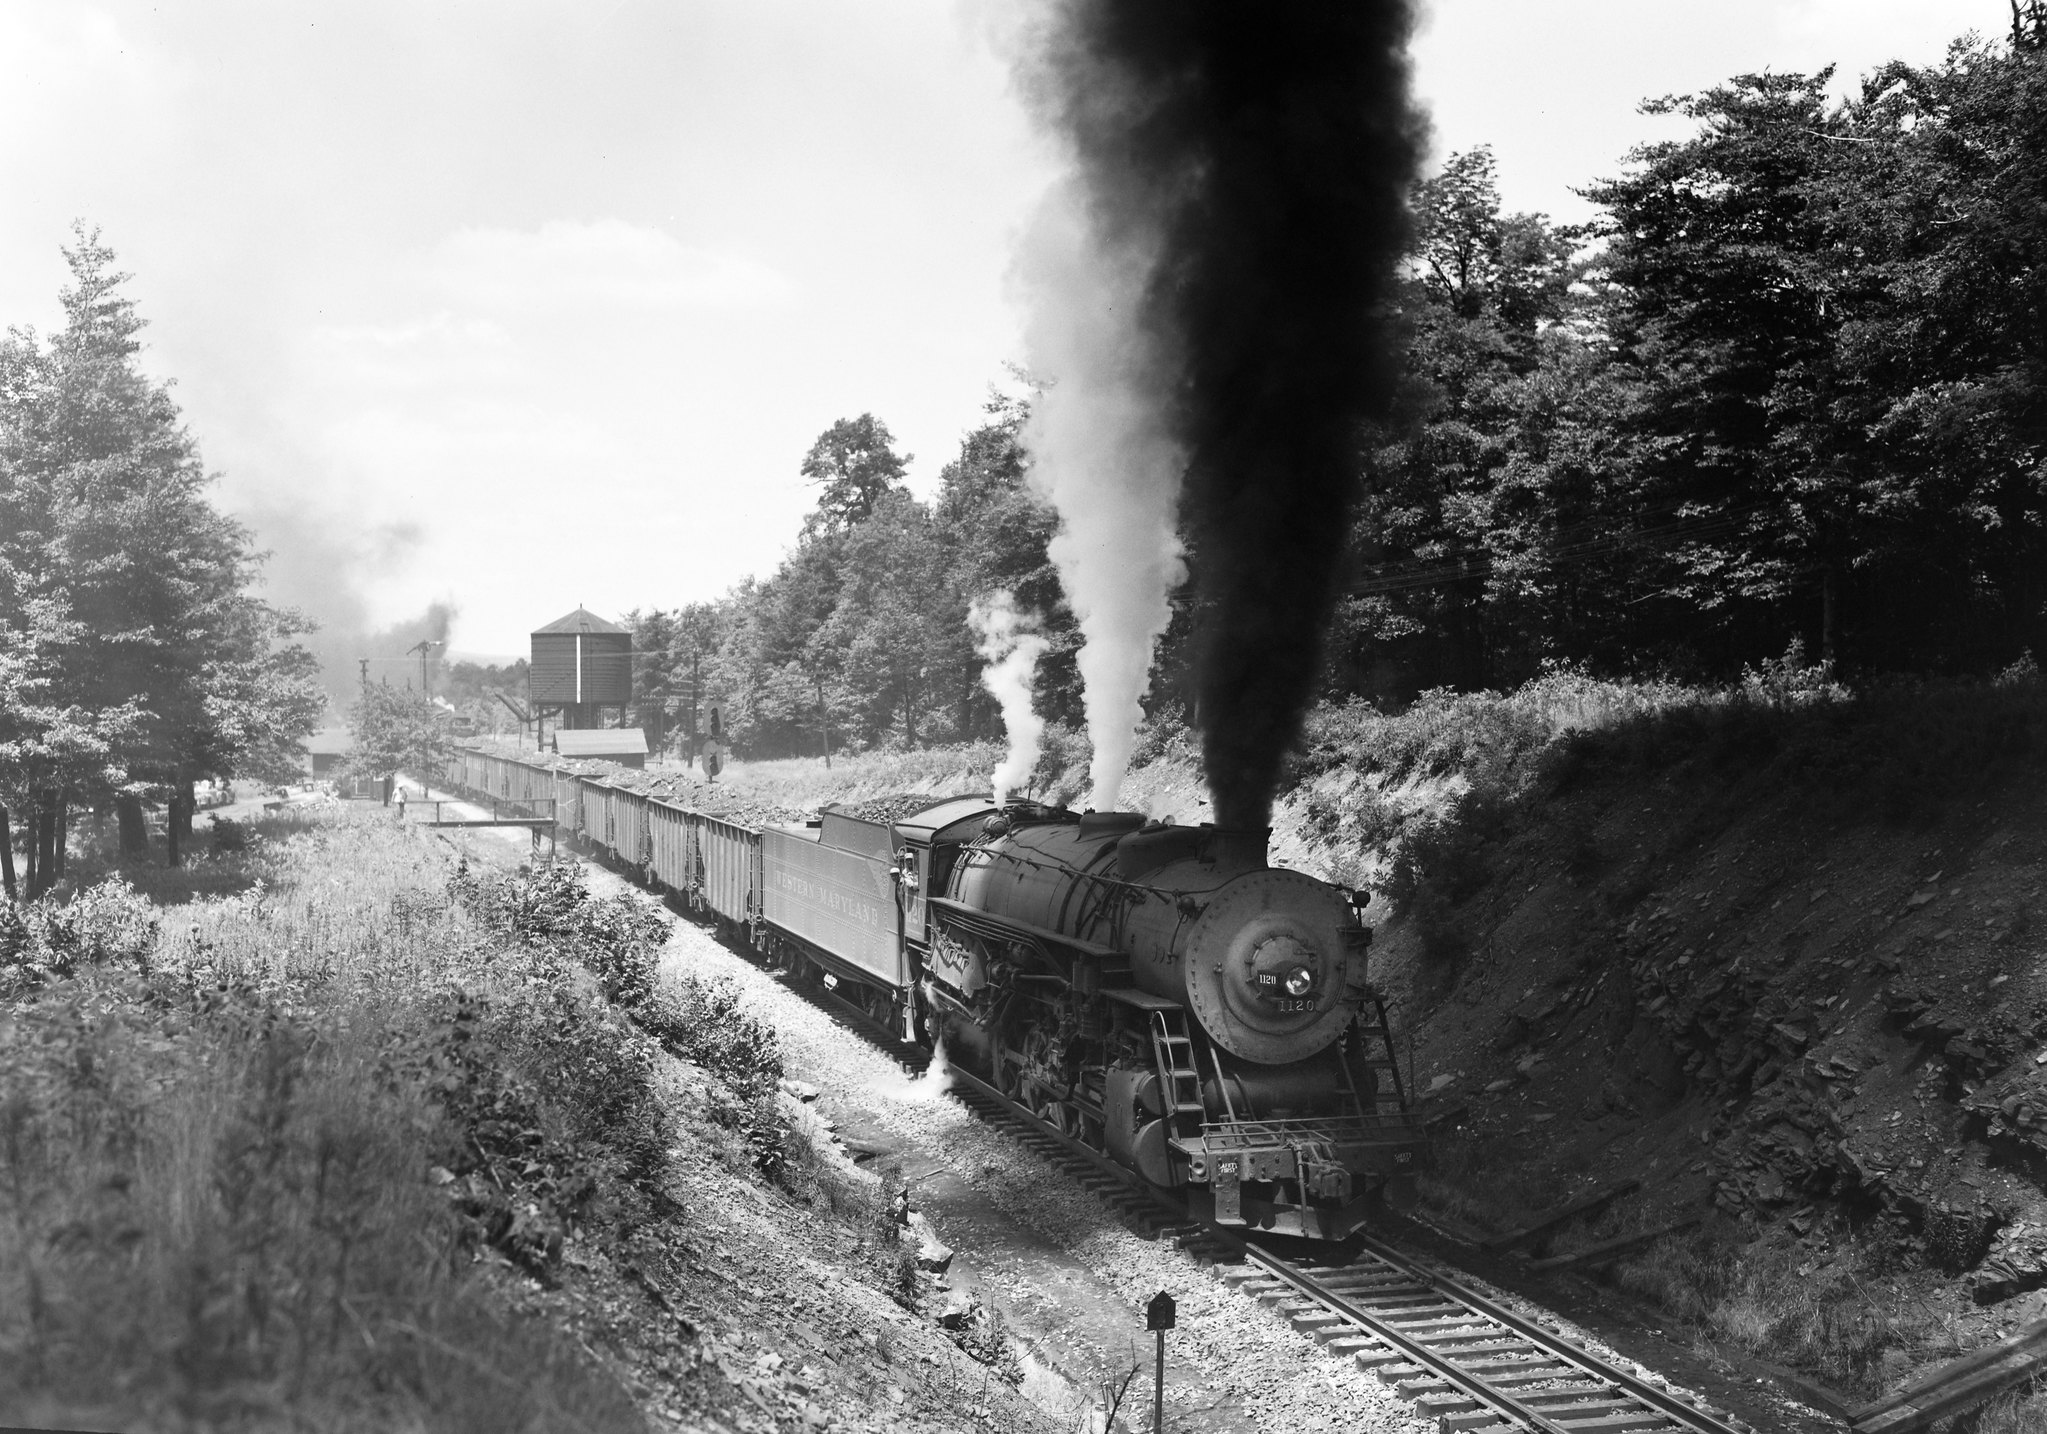 Donald W  Furler Collection – Center for Railroad